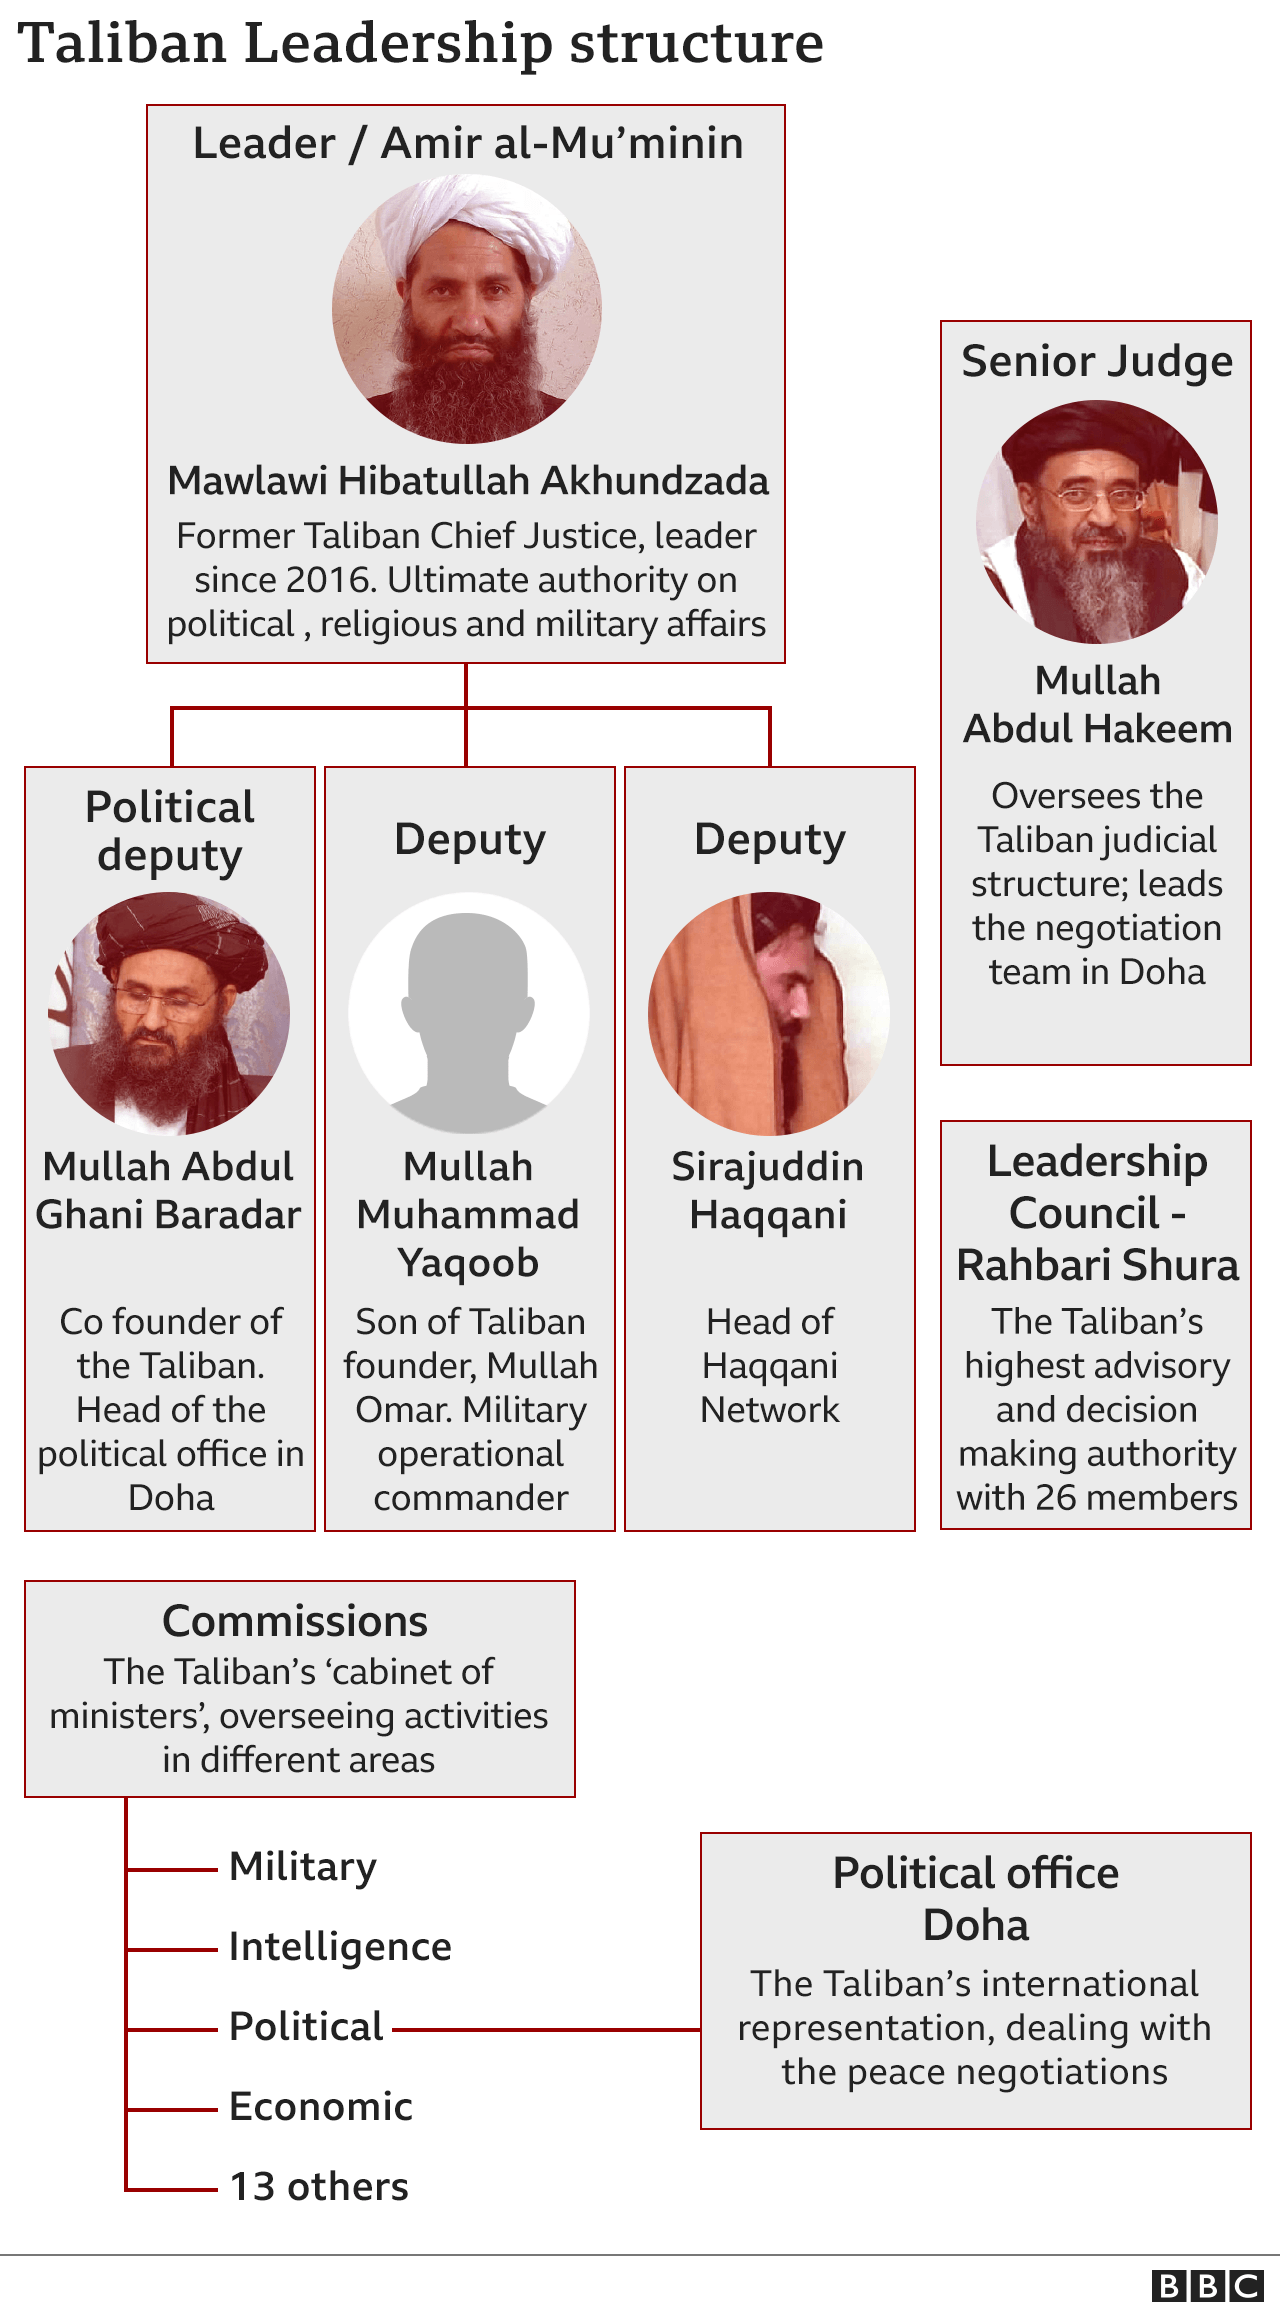 Graphic showing the Taliban leadership structure